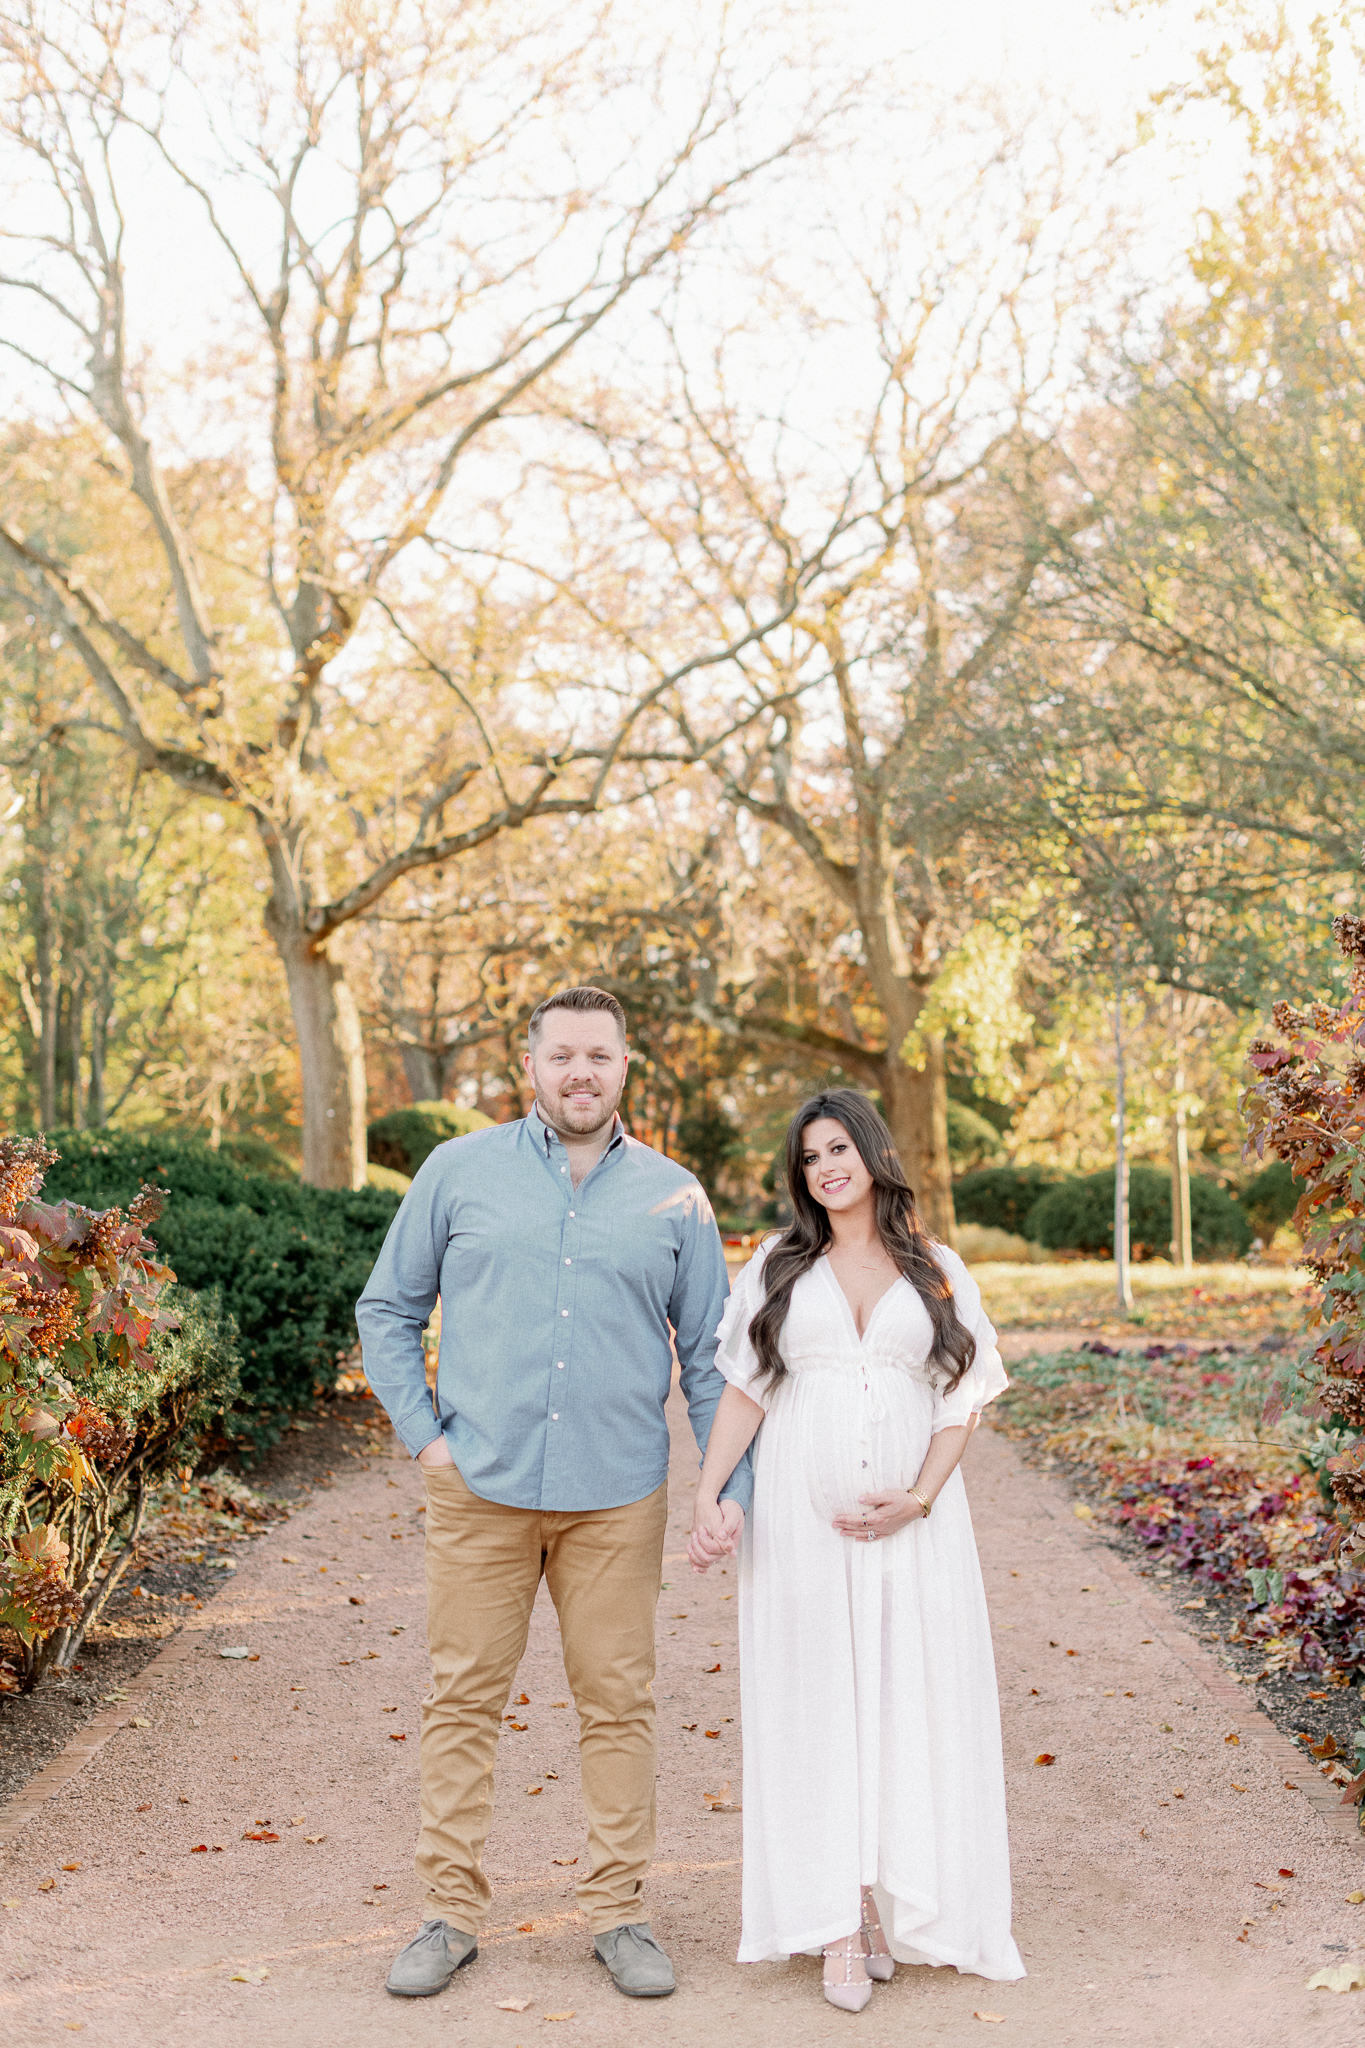 Chicago Southwest Florida Fine Art Maternity Family Photographer | Cantigny Maternity Photos -27